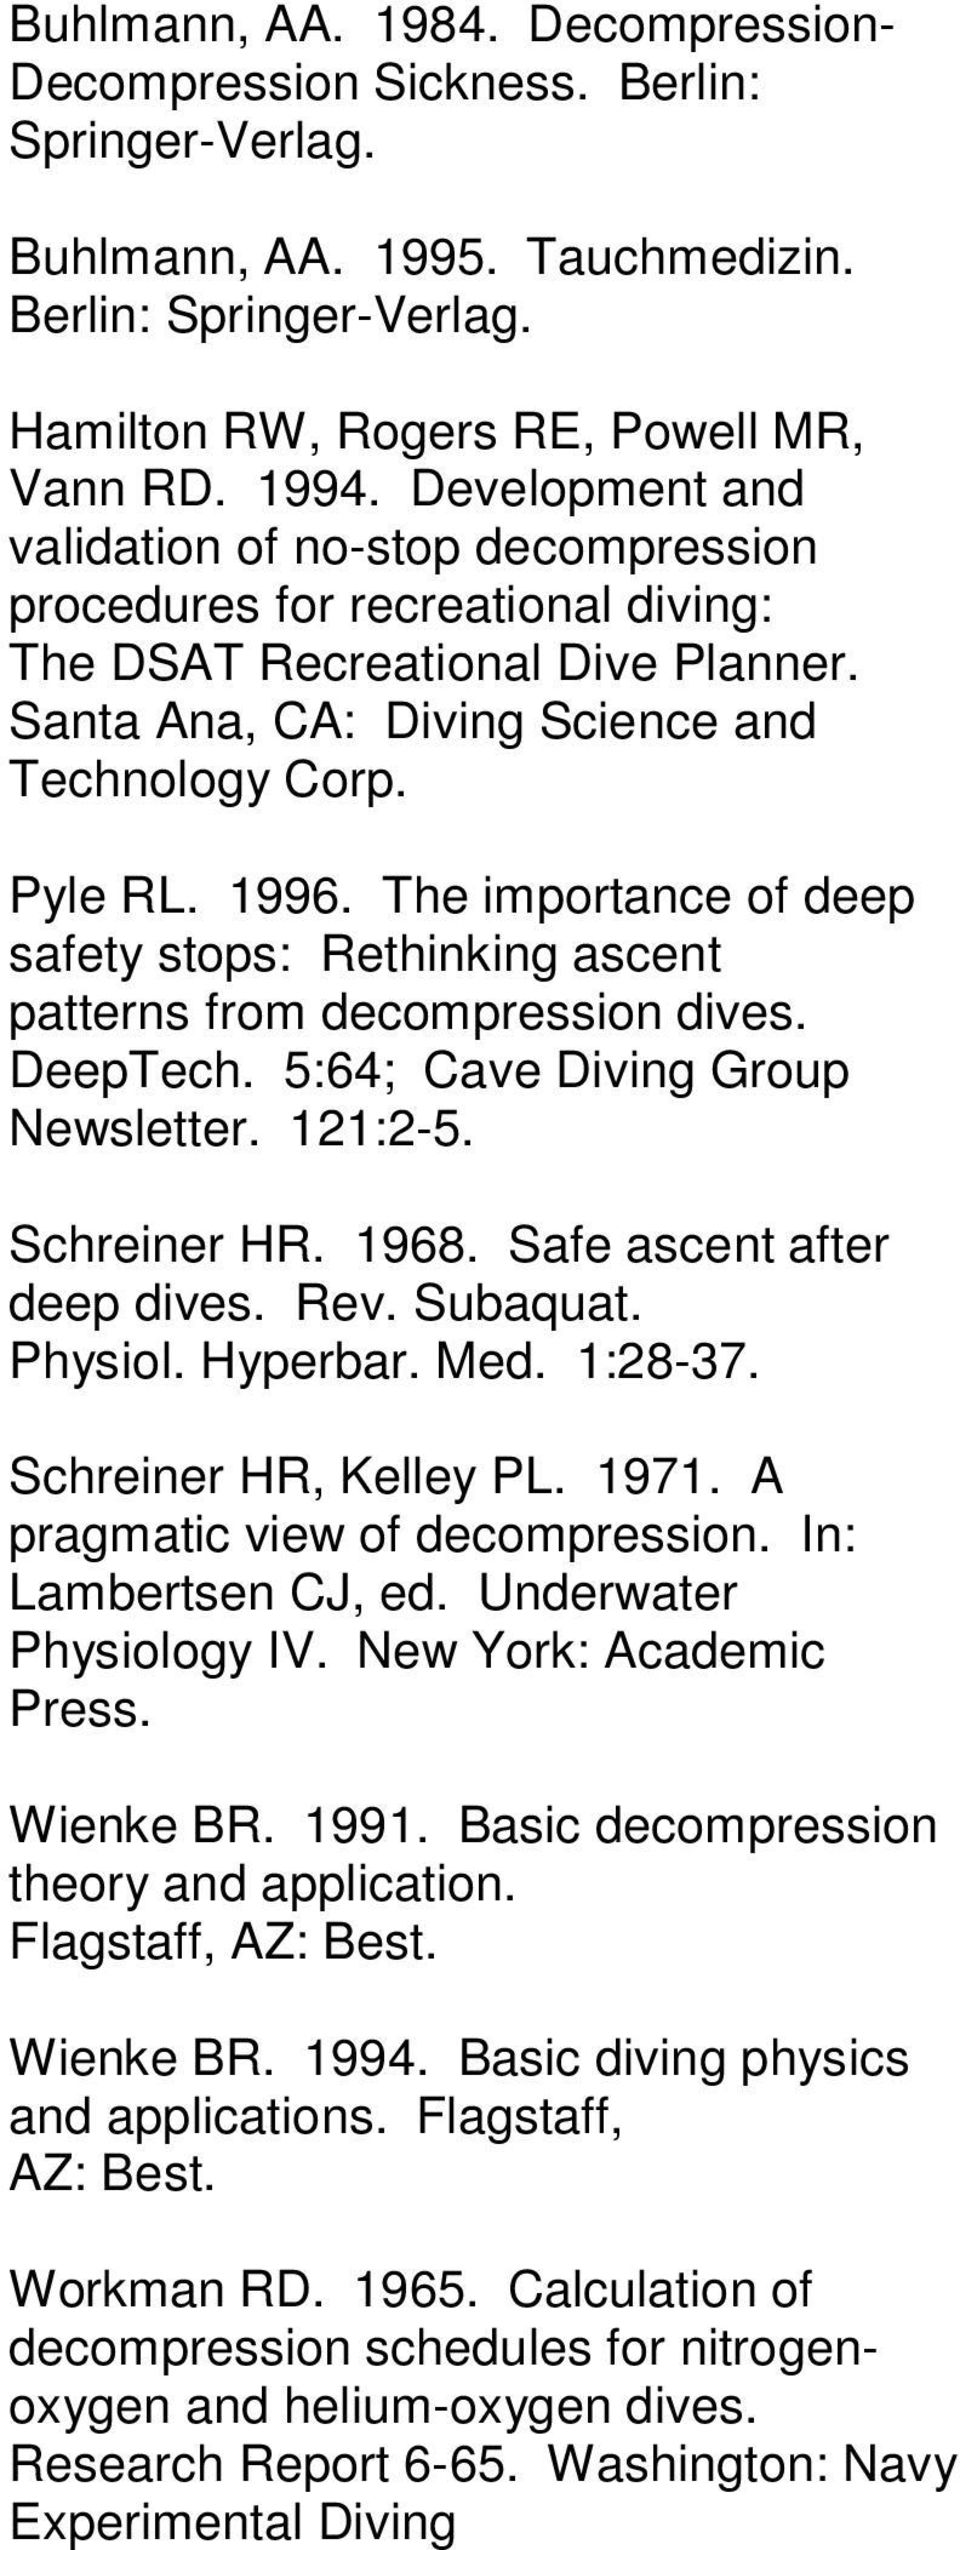 The importance of deep safety stops: Rethinking ascent patterns from decompression dives. DeepTech. 5:64; Cave Diving Group Newsletter. 121:2-5. Schreiner HR. 1968. Safe ascent after deep dives. Rev.